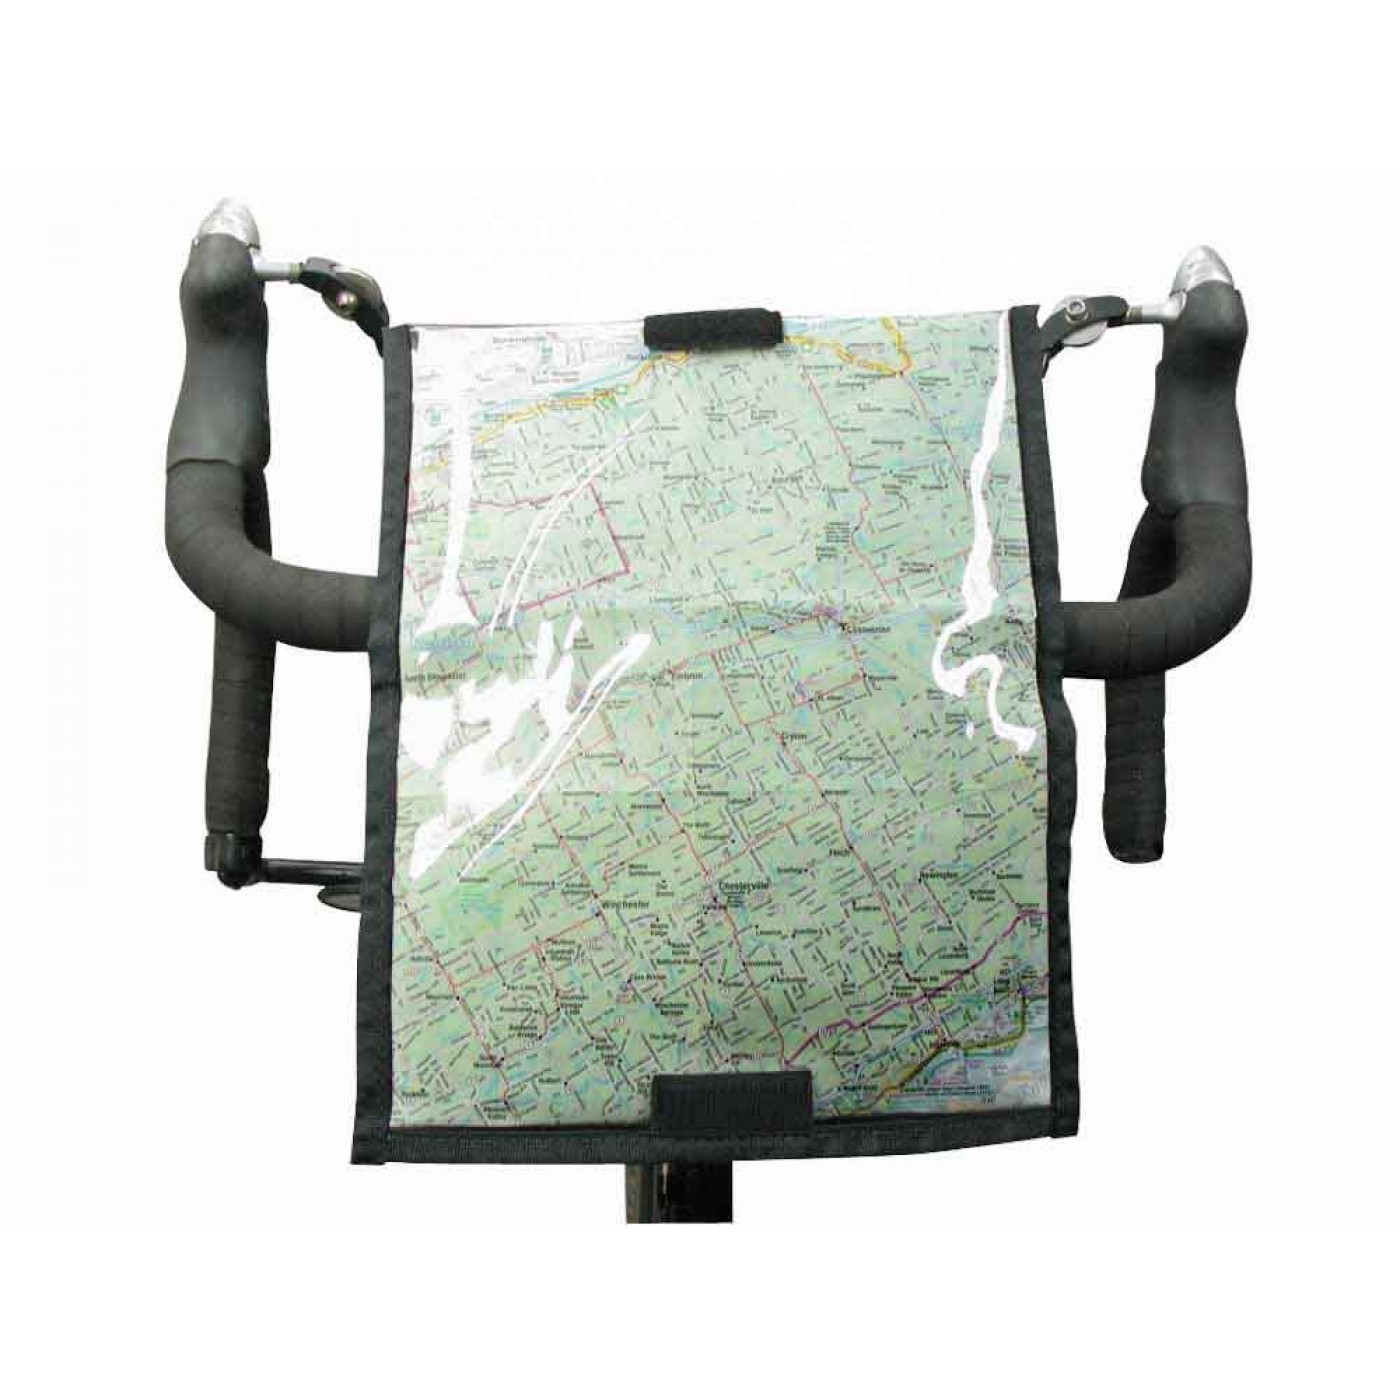 Arkel MapCase attached to handlebar be80676e811